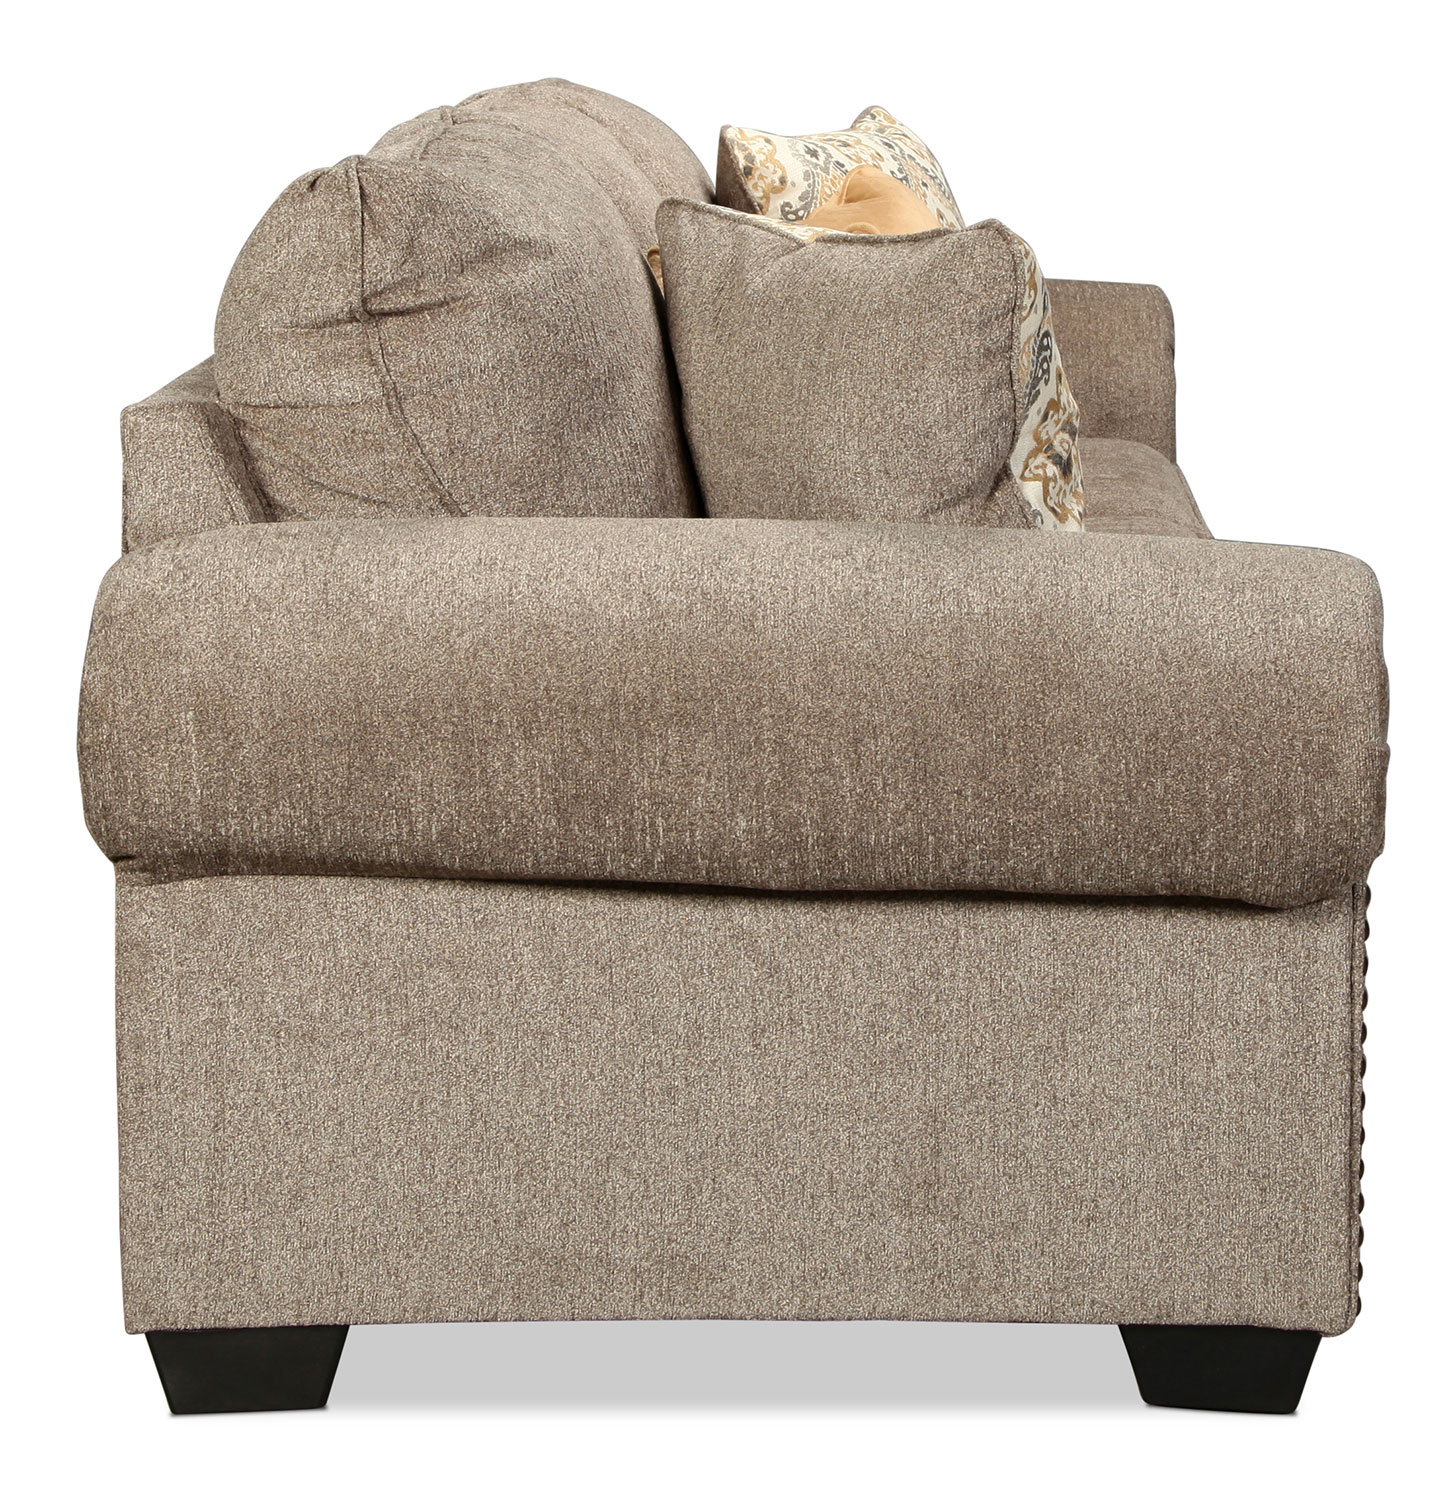 Callie Sofa – Grey | Regarding Callie Sofa Chairs (View 3 of 25)